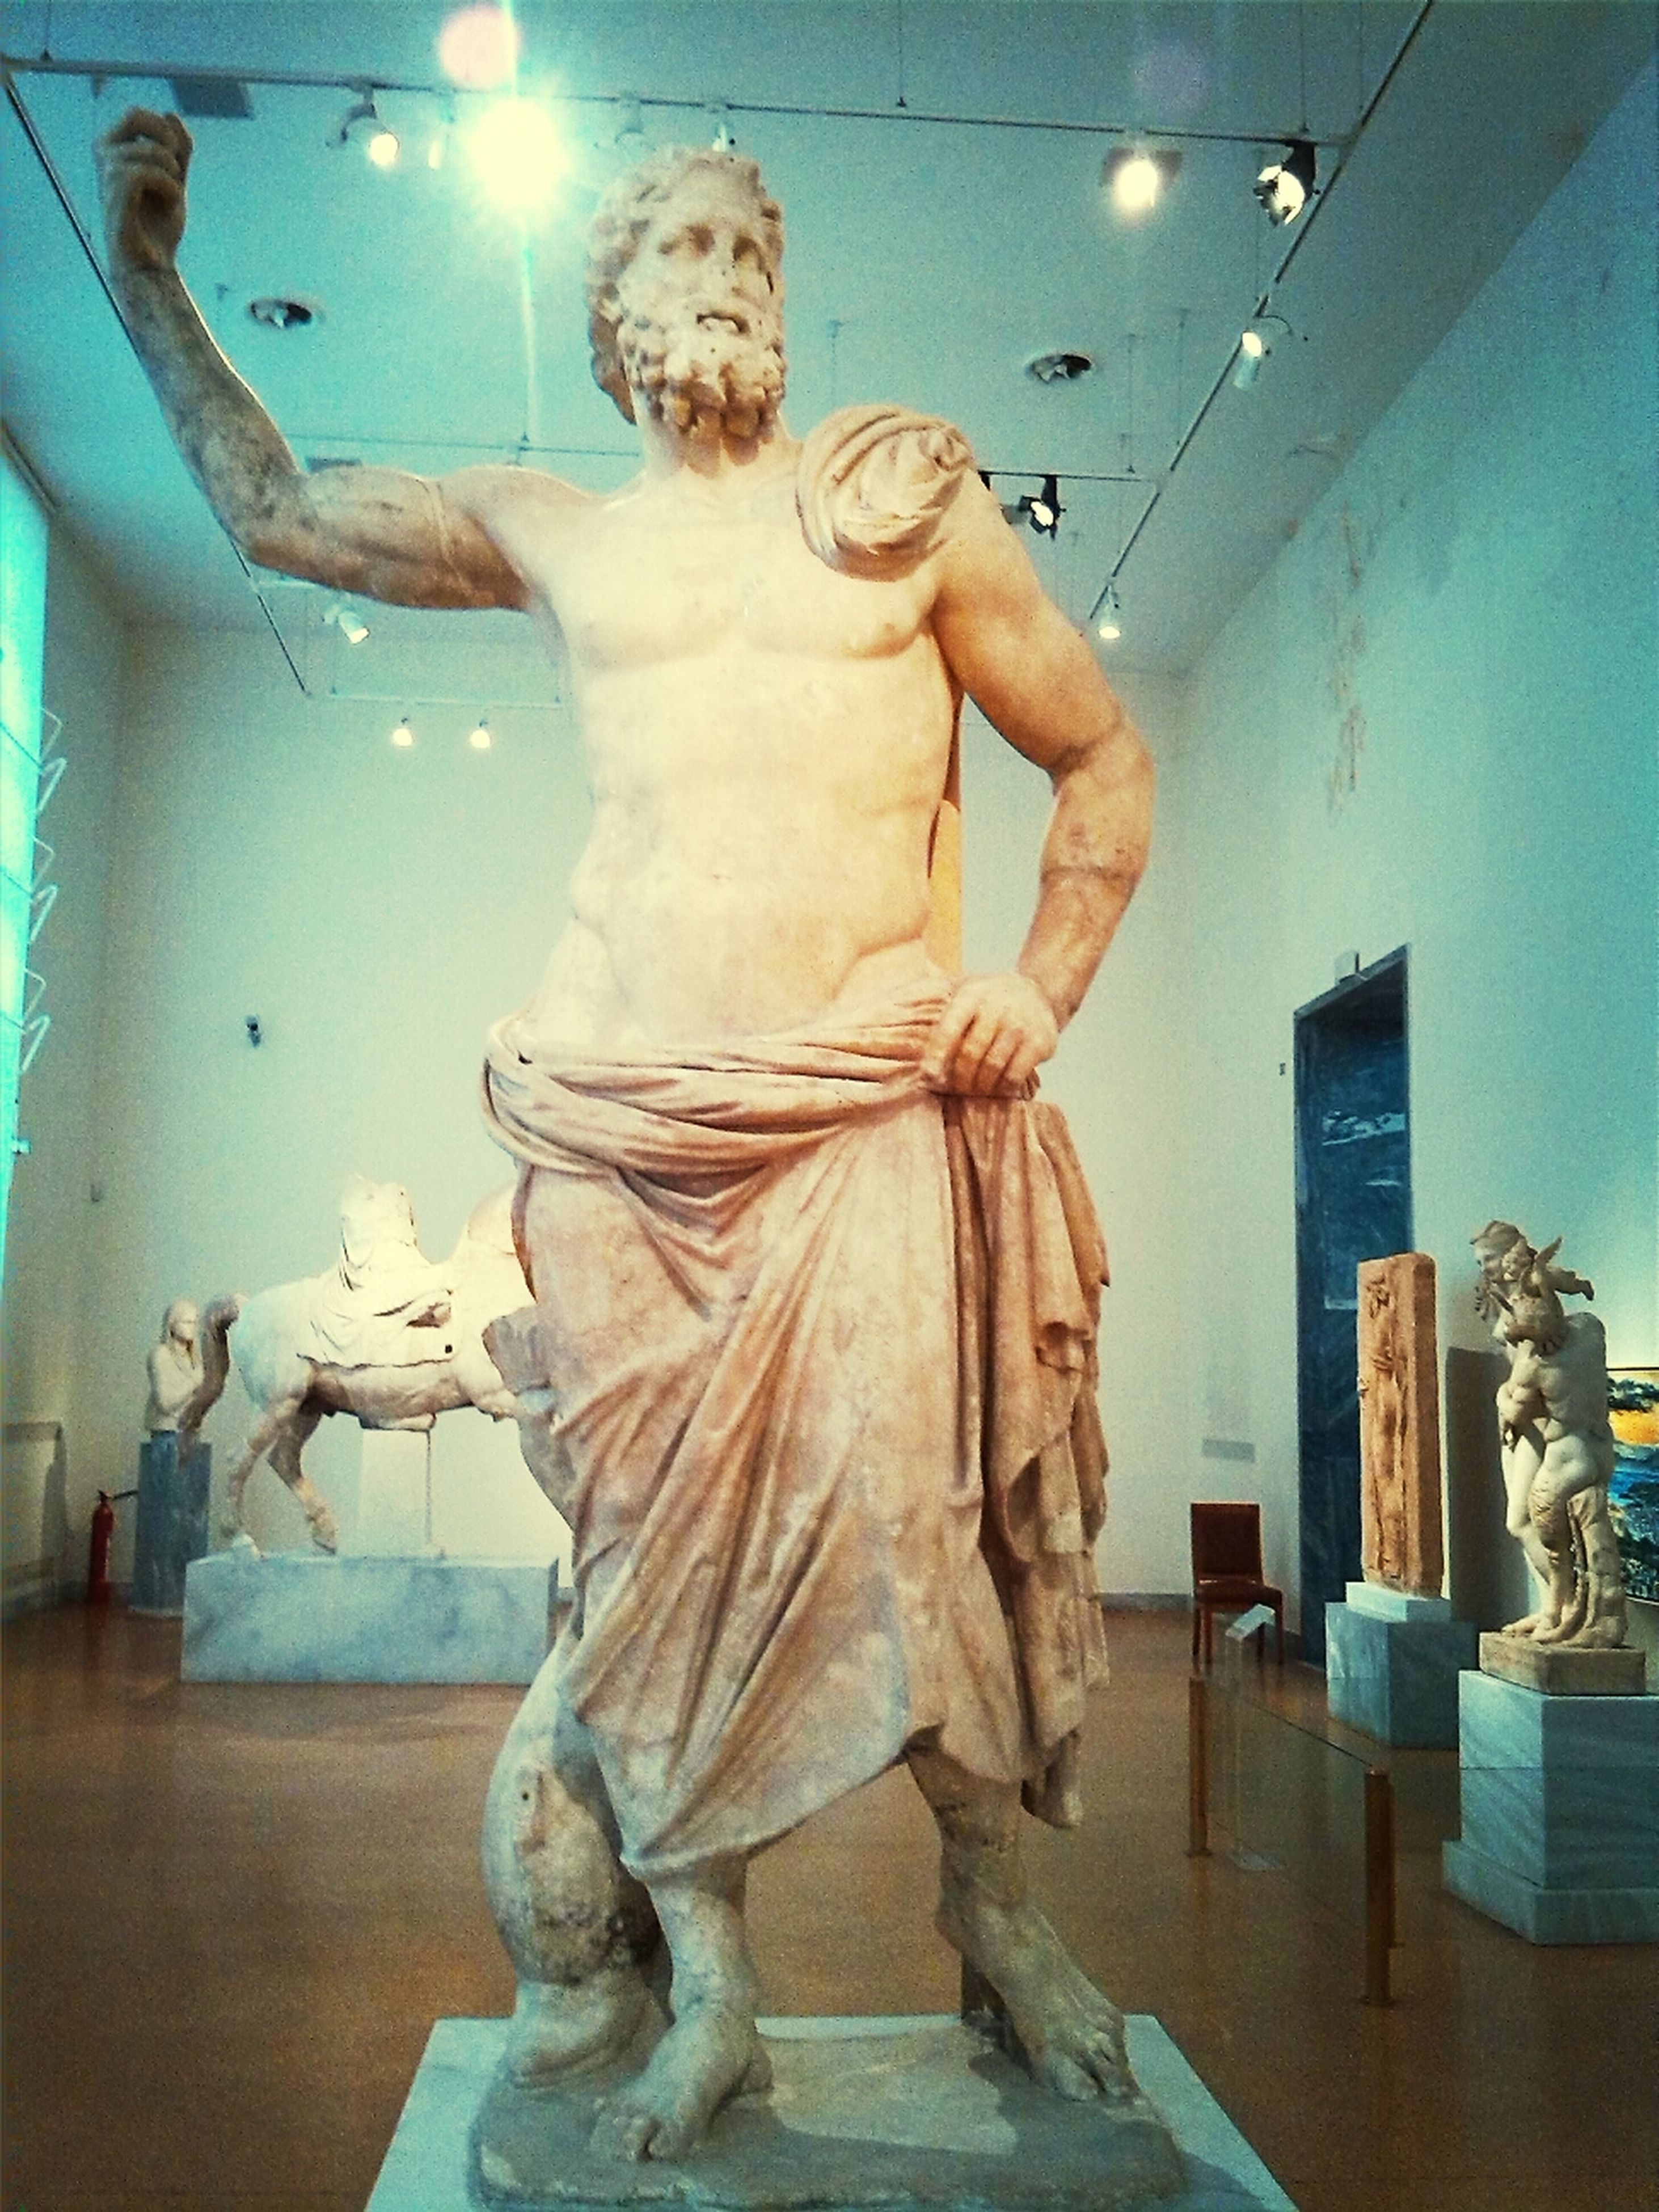 human representation, statue, sculpture, art, art and craft, creativity, indoors, animal representation, low angle view, full length, built structure, water, architecture, carving - craft product, day, figurine, craft